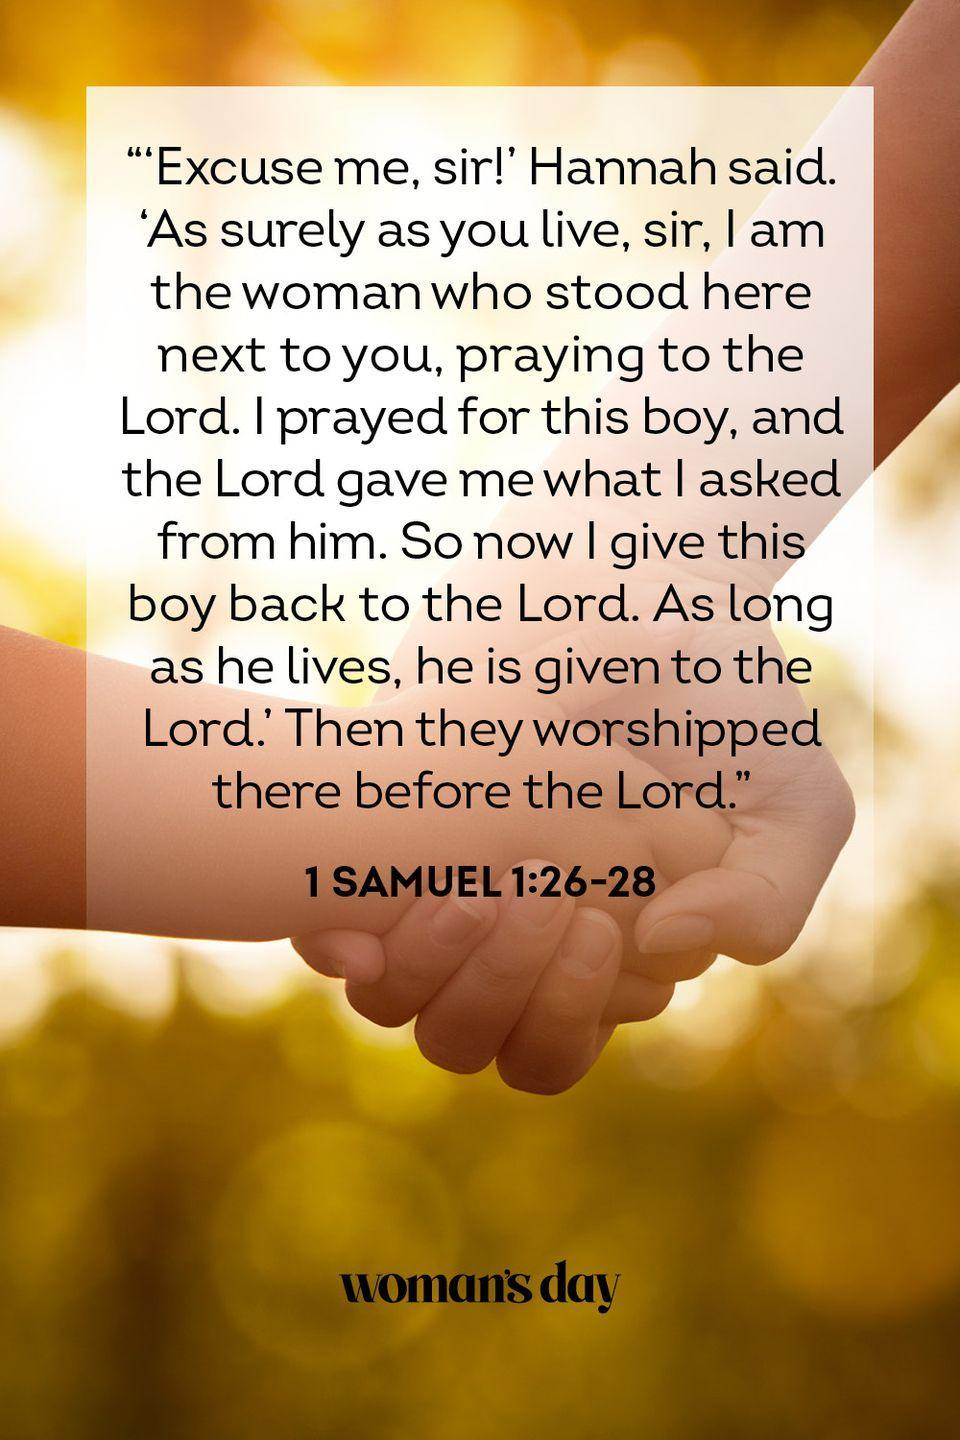 "<p>""Excuse me, sir!"" Hannah said. ""As surely as you live, sir, I am the woman who stood here next to you, praying to the Lord. I prayed for this boy, and the Lord gave me what I asked from him. So now I give this boy back to the Lord. As long as he lives, he is given to the Lord."" Then they worshipped there before the Lord."" </p><p><strong>The Good News:</strong> A mother that prays for you is one that God hears.</p>"